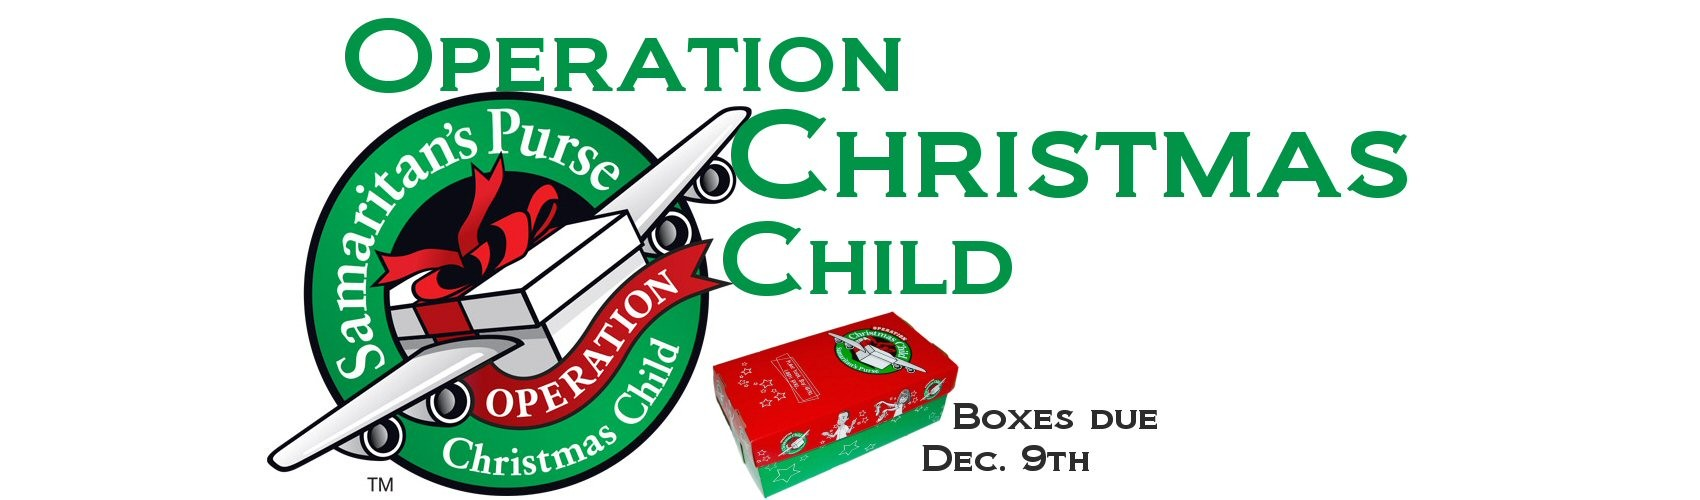 Operation Christmas Child Shoesbox